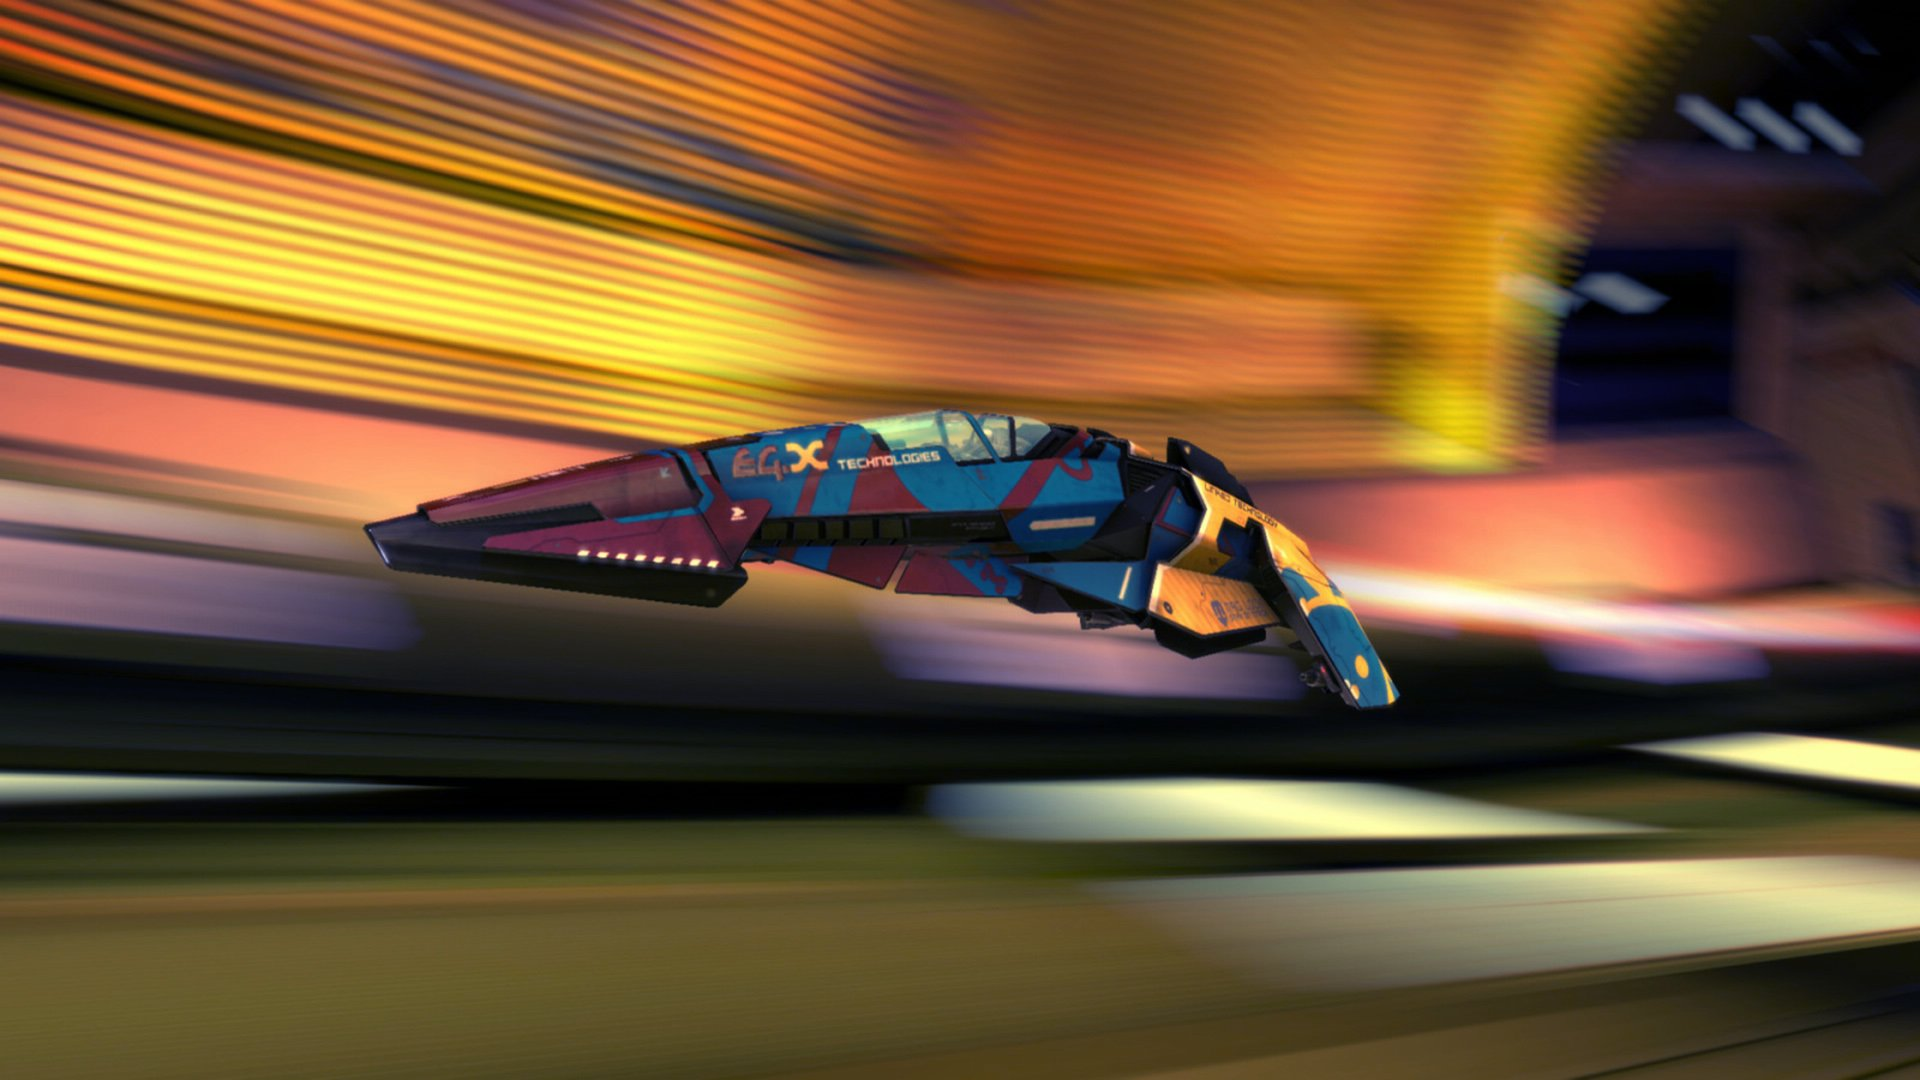 Video Game - Wipeout  Wallpaper